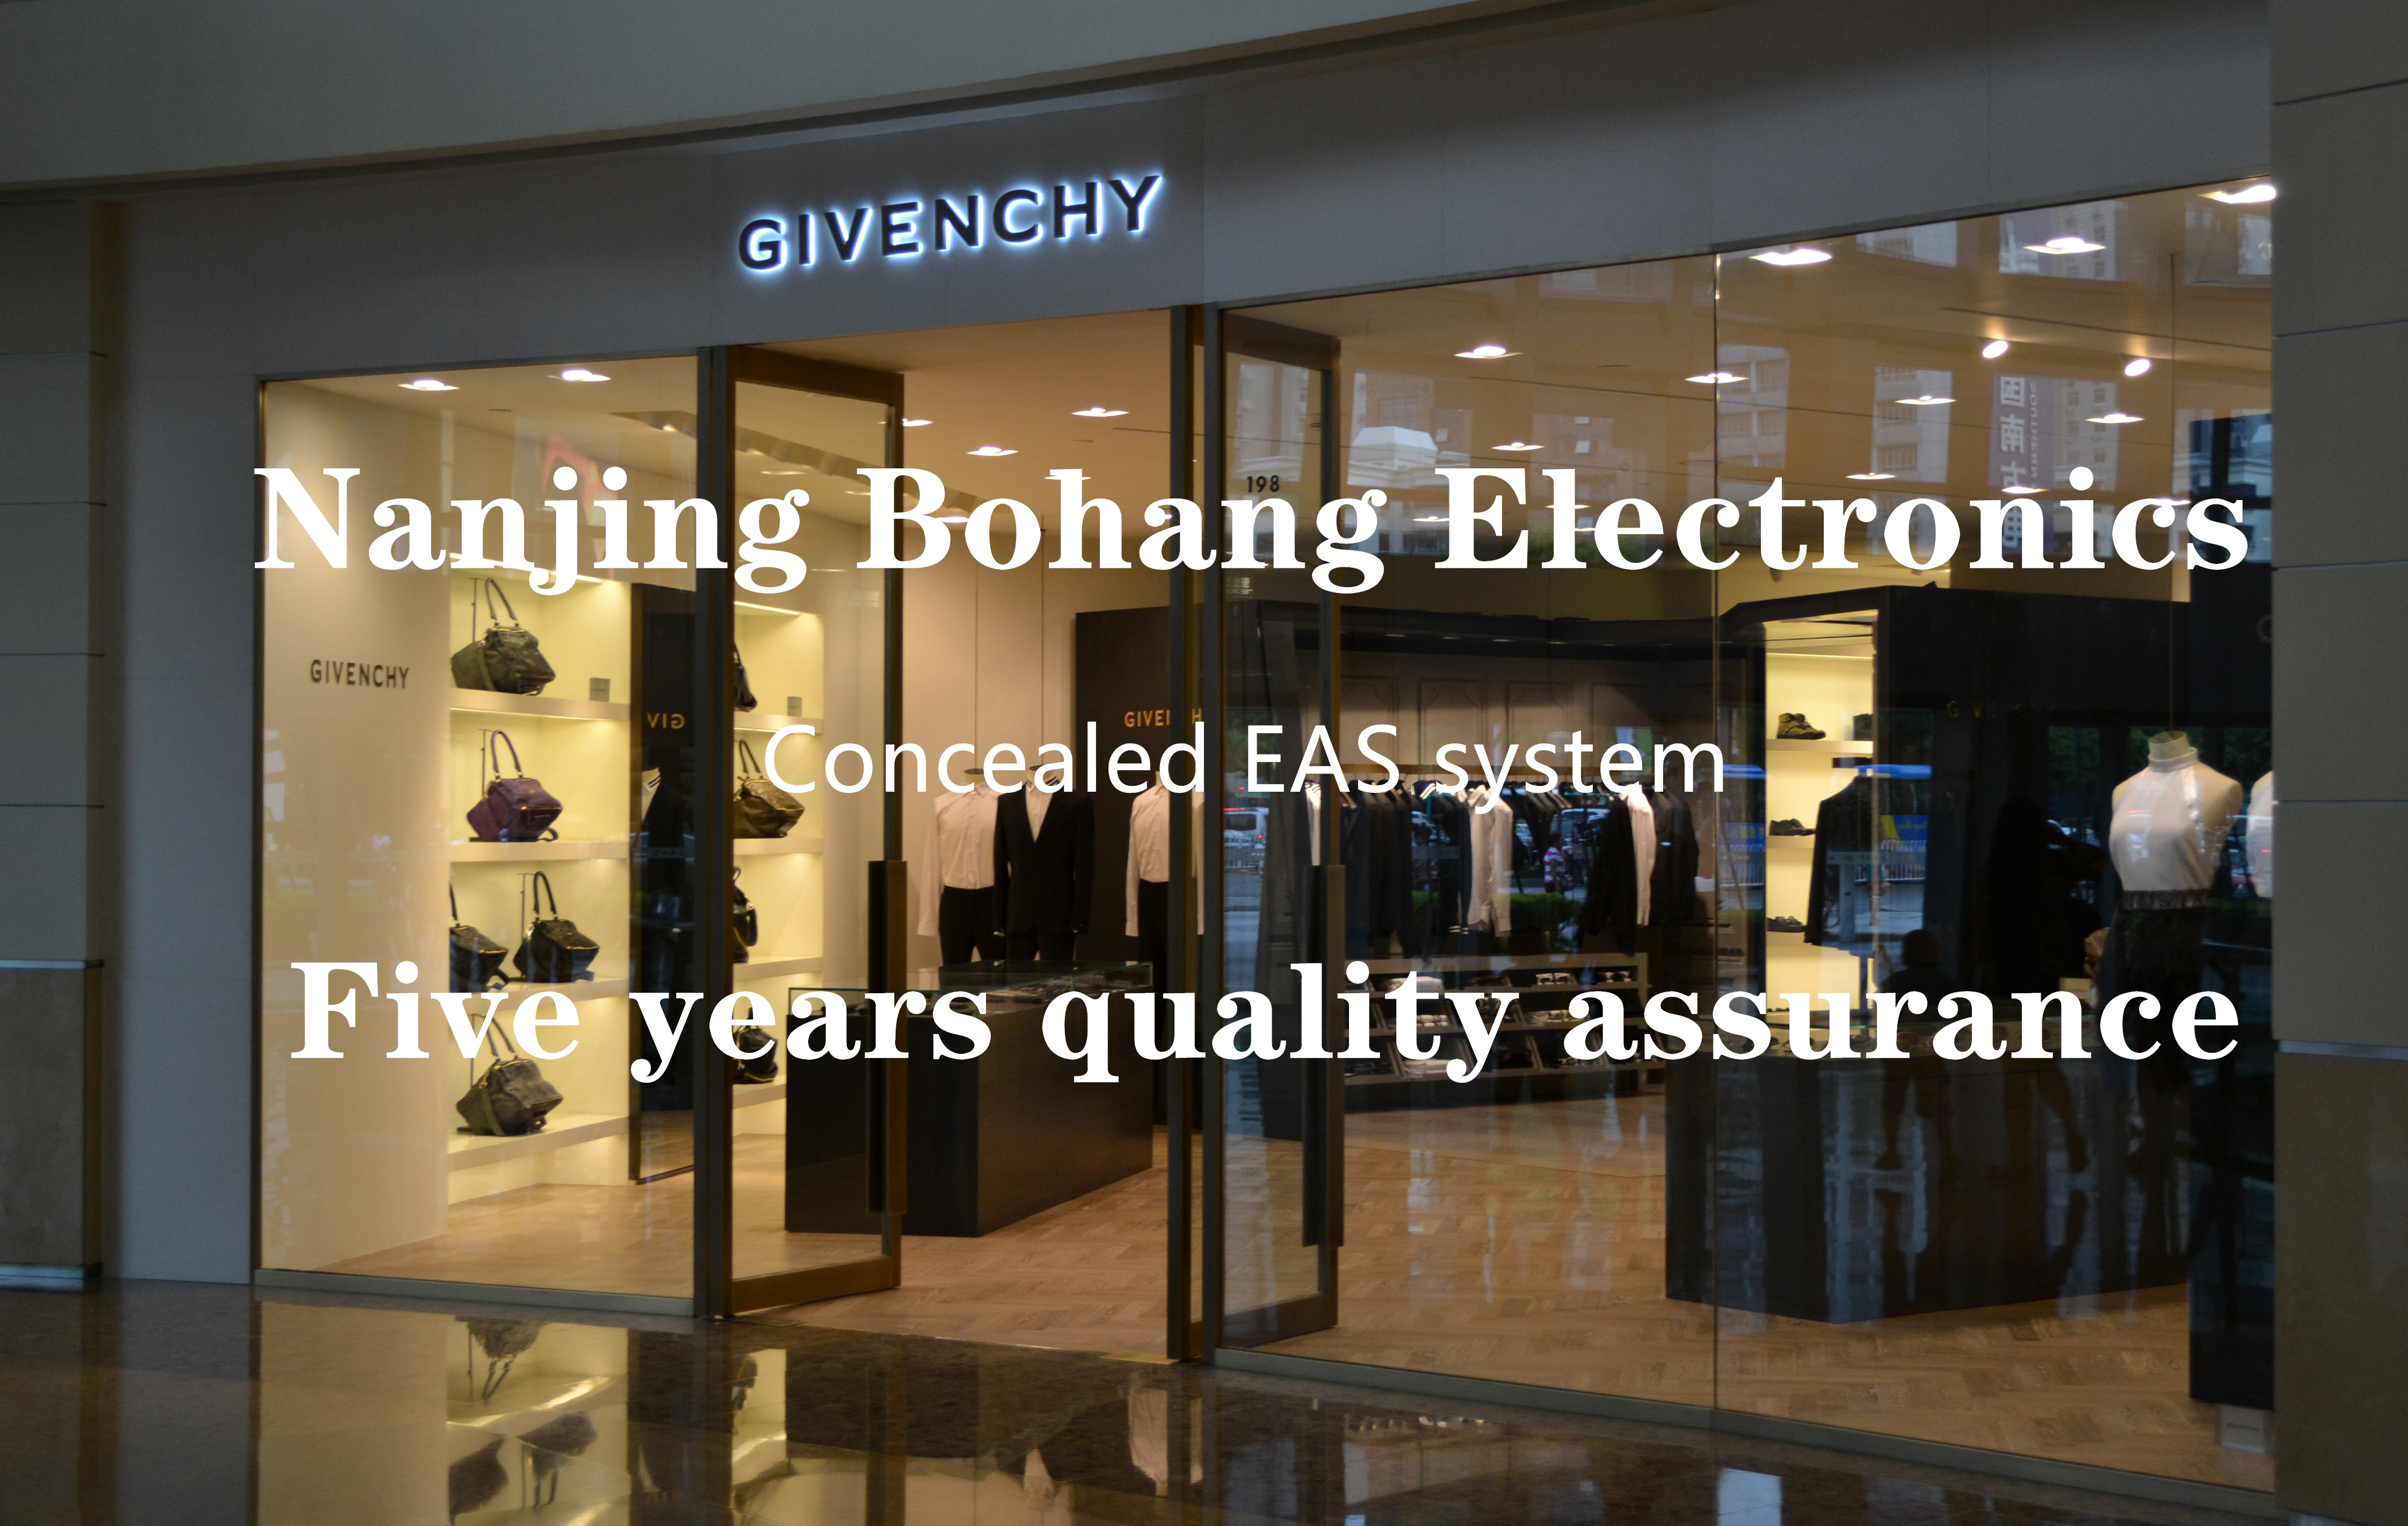 Bohang concealed EAS system